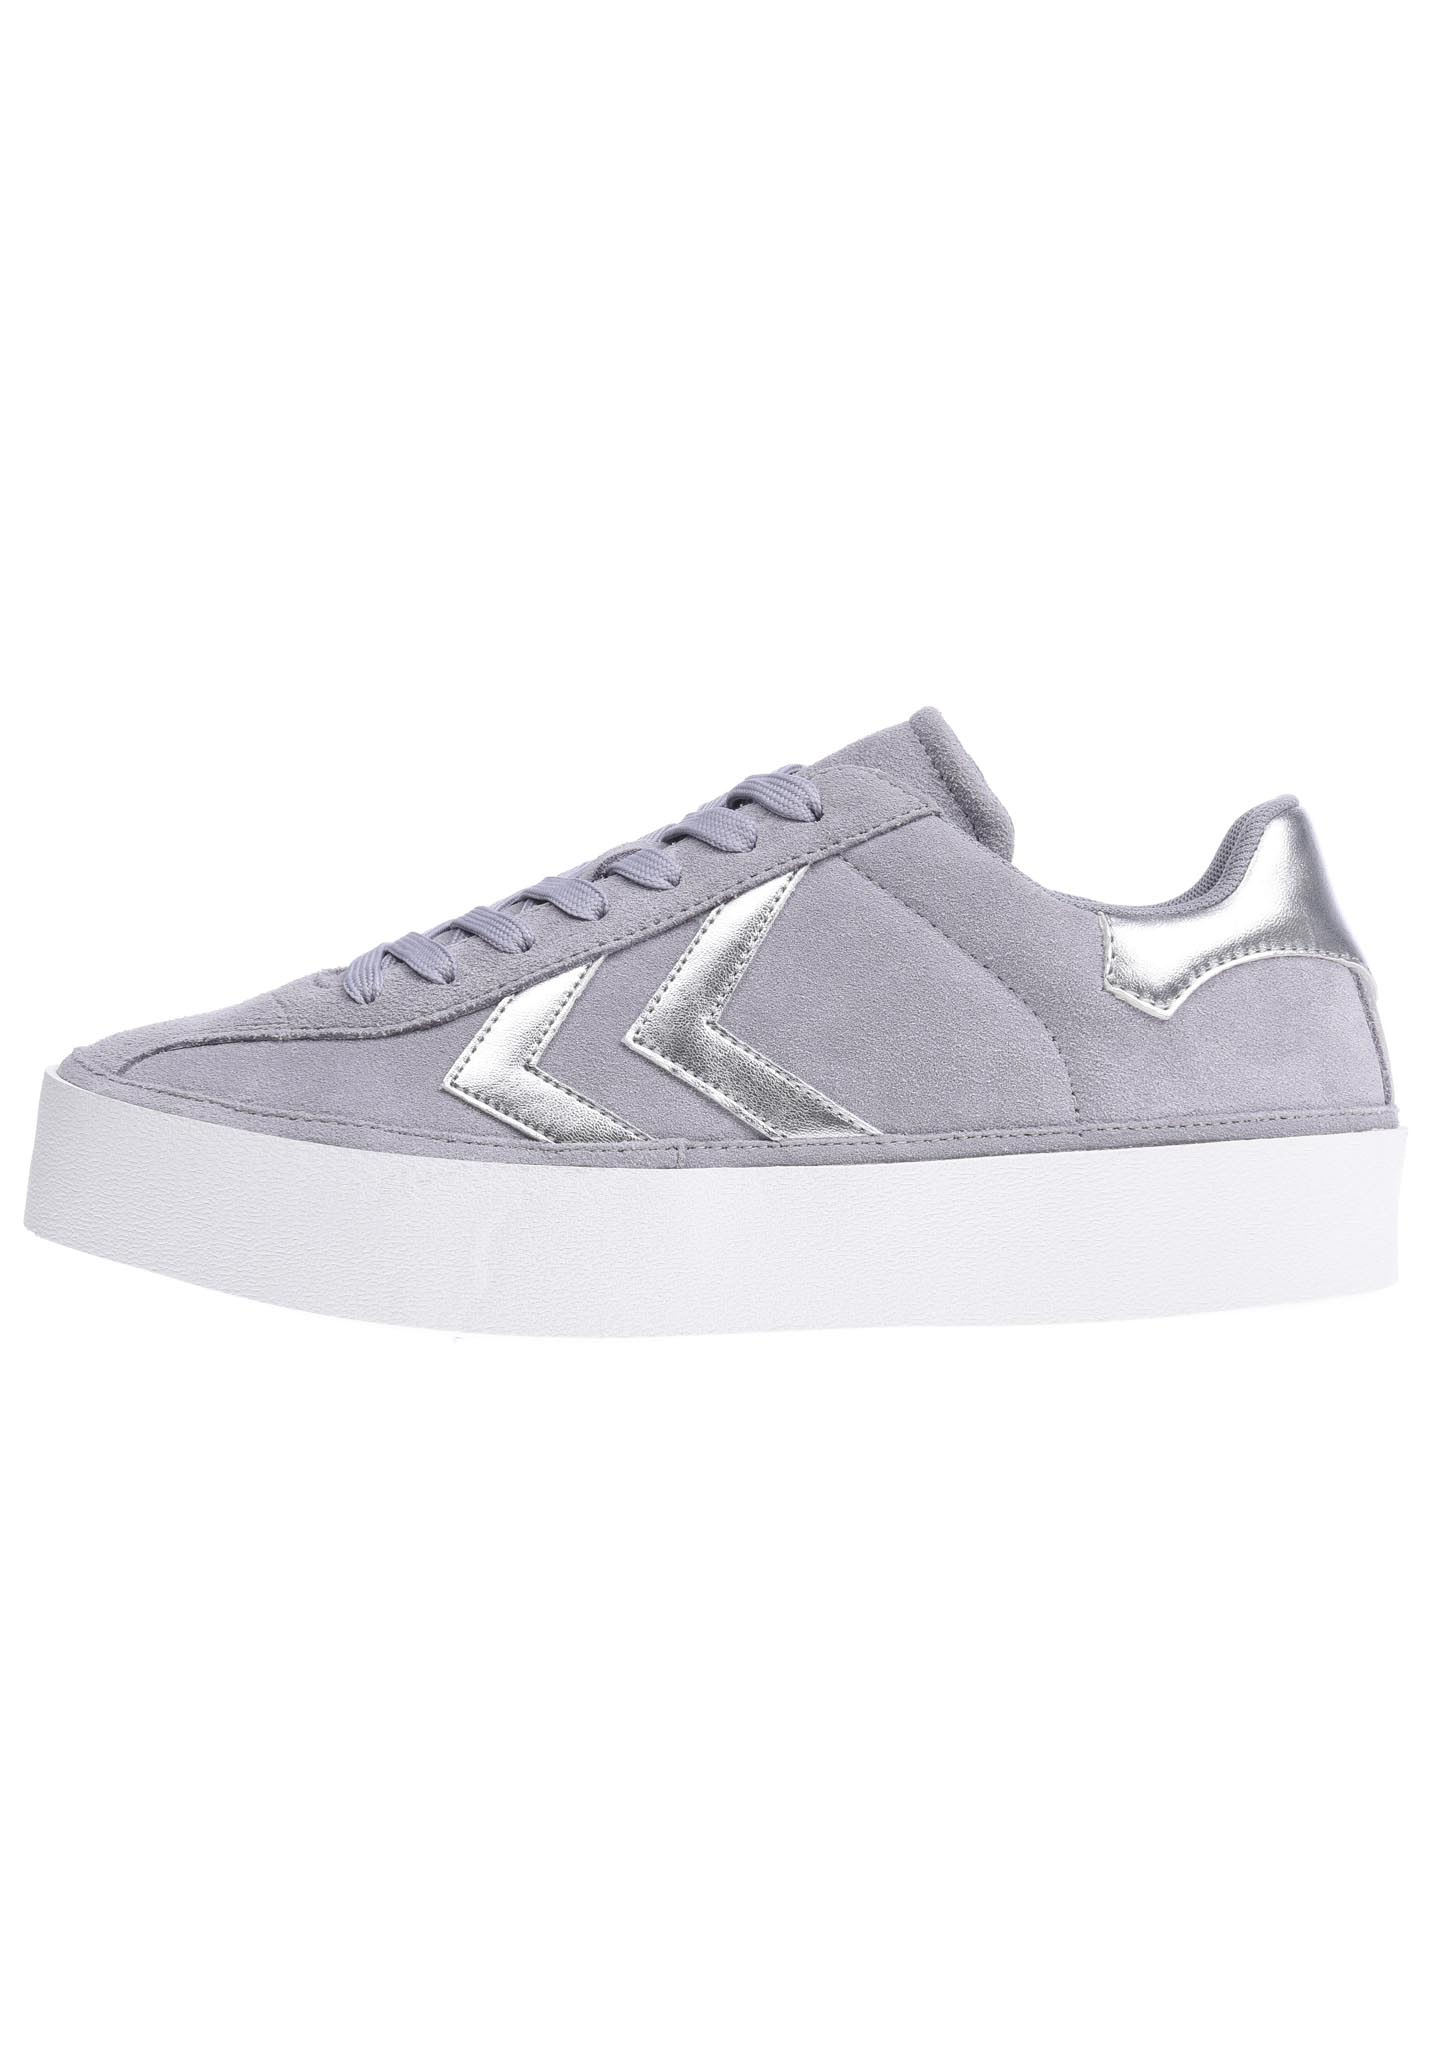 Sports Planet Pour Gris Hummel Highrise Femme Diamant Baskets WH9YED2I